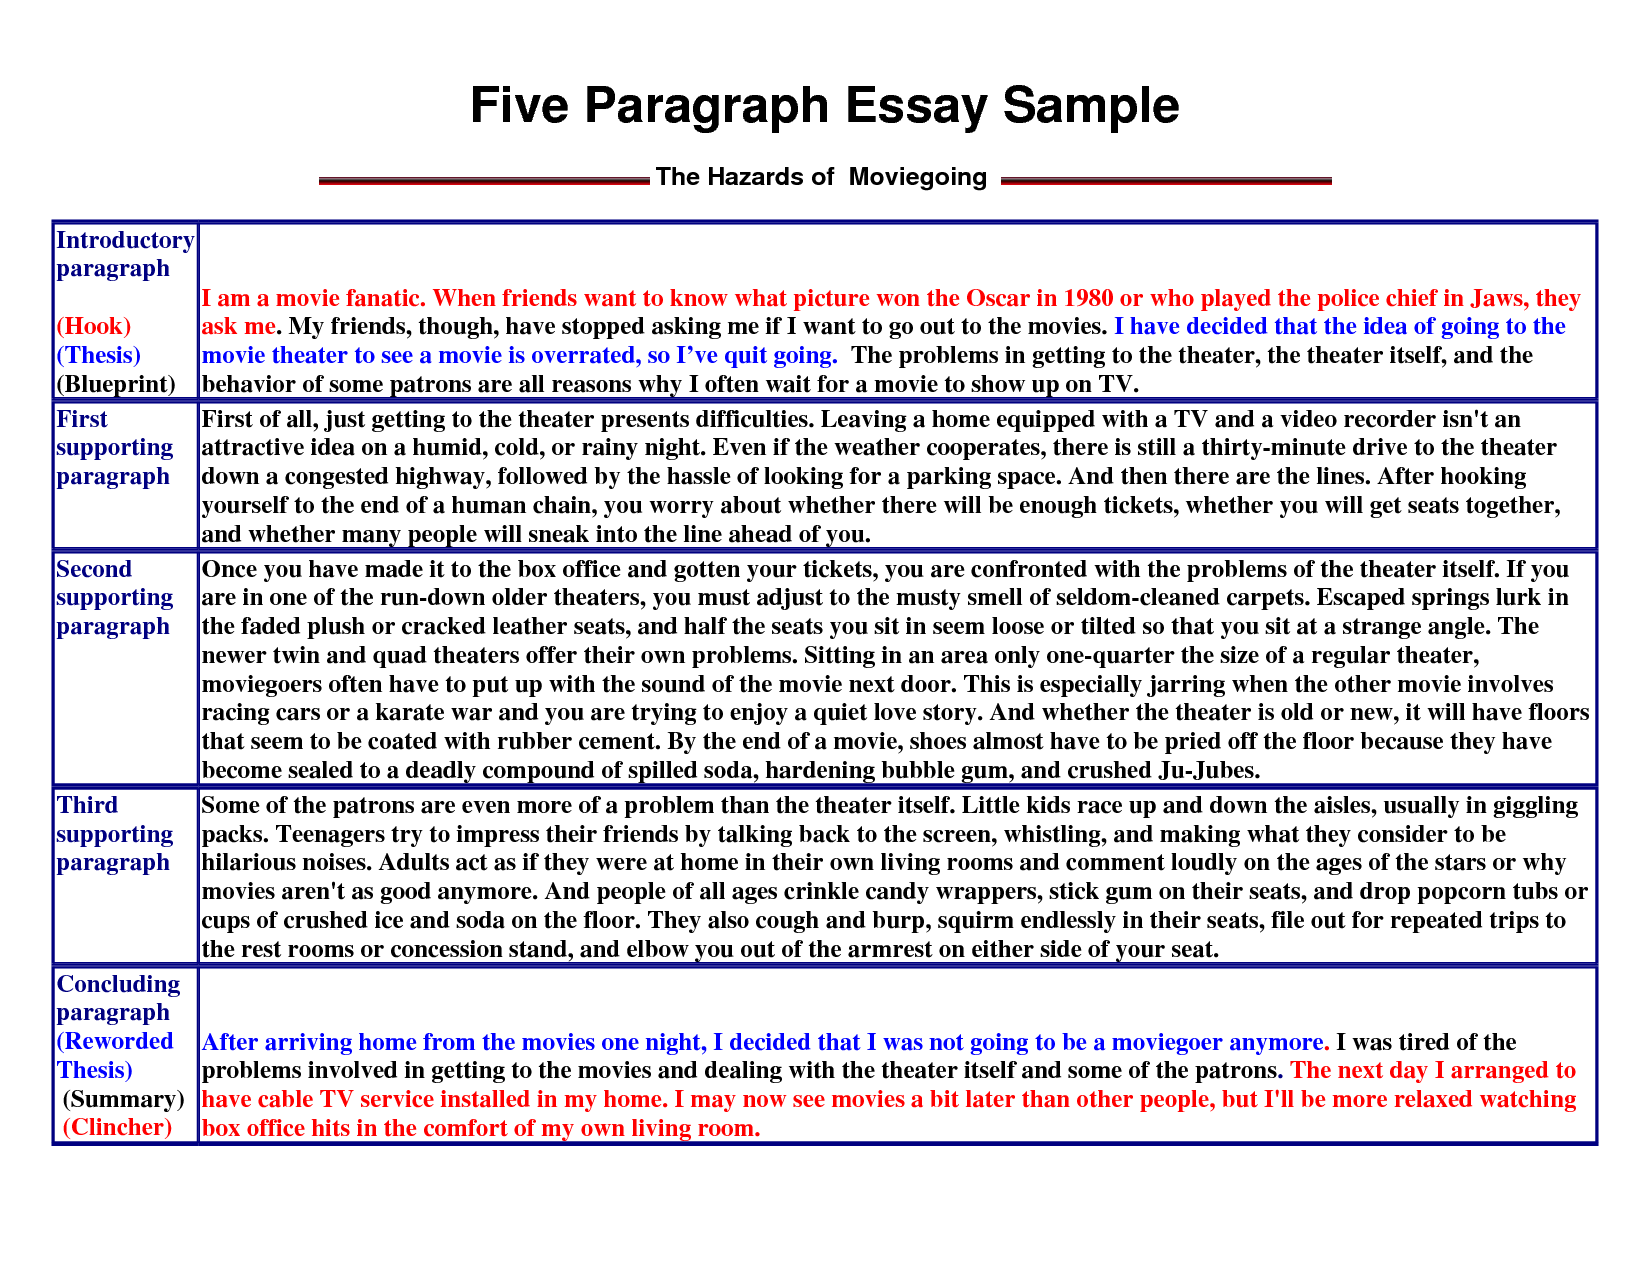 How to write a good argument essay  Creates a new character stream writer  whose